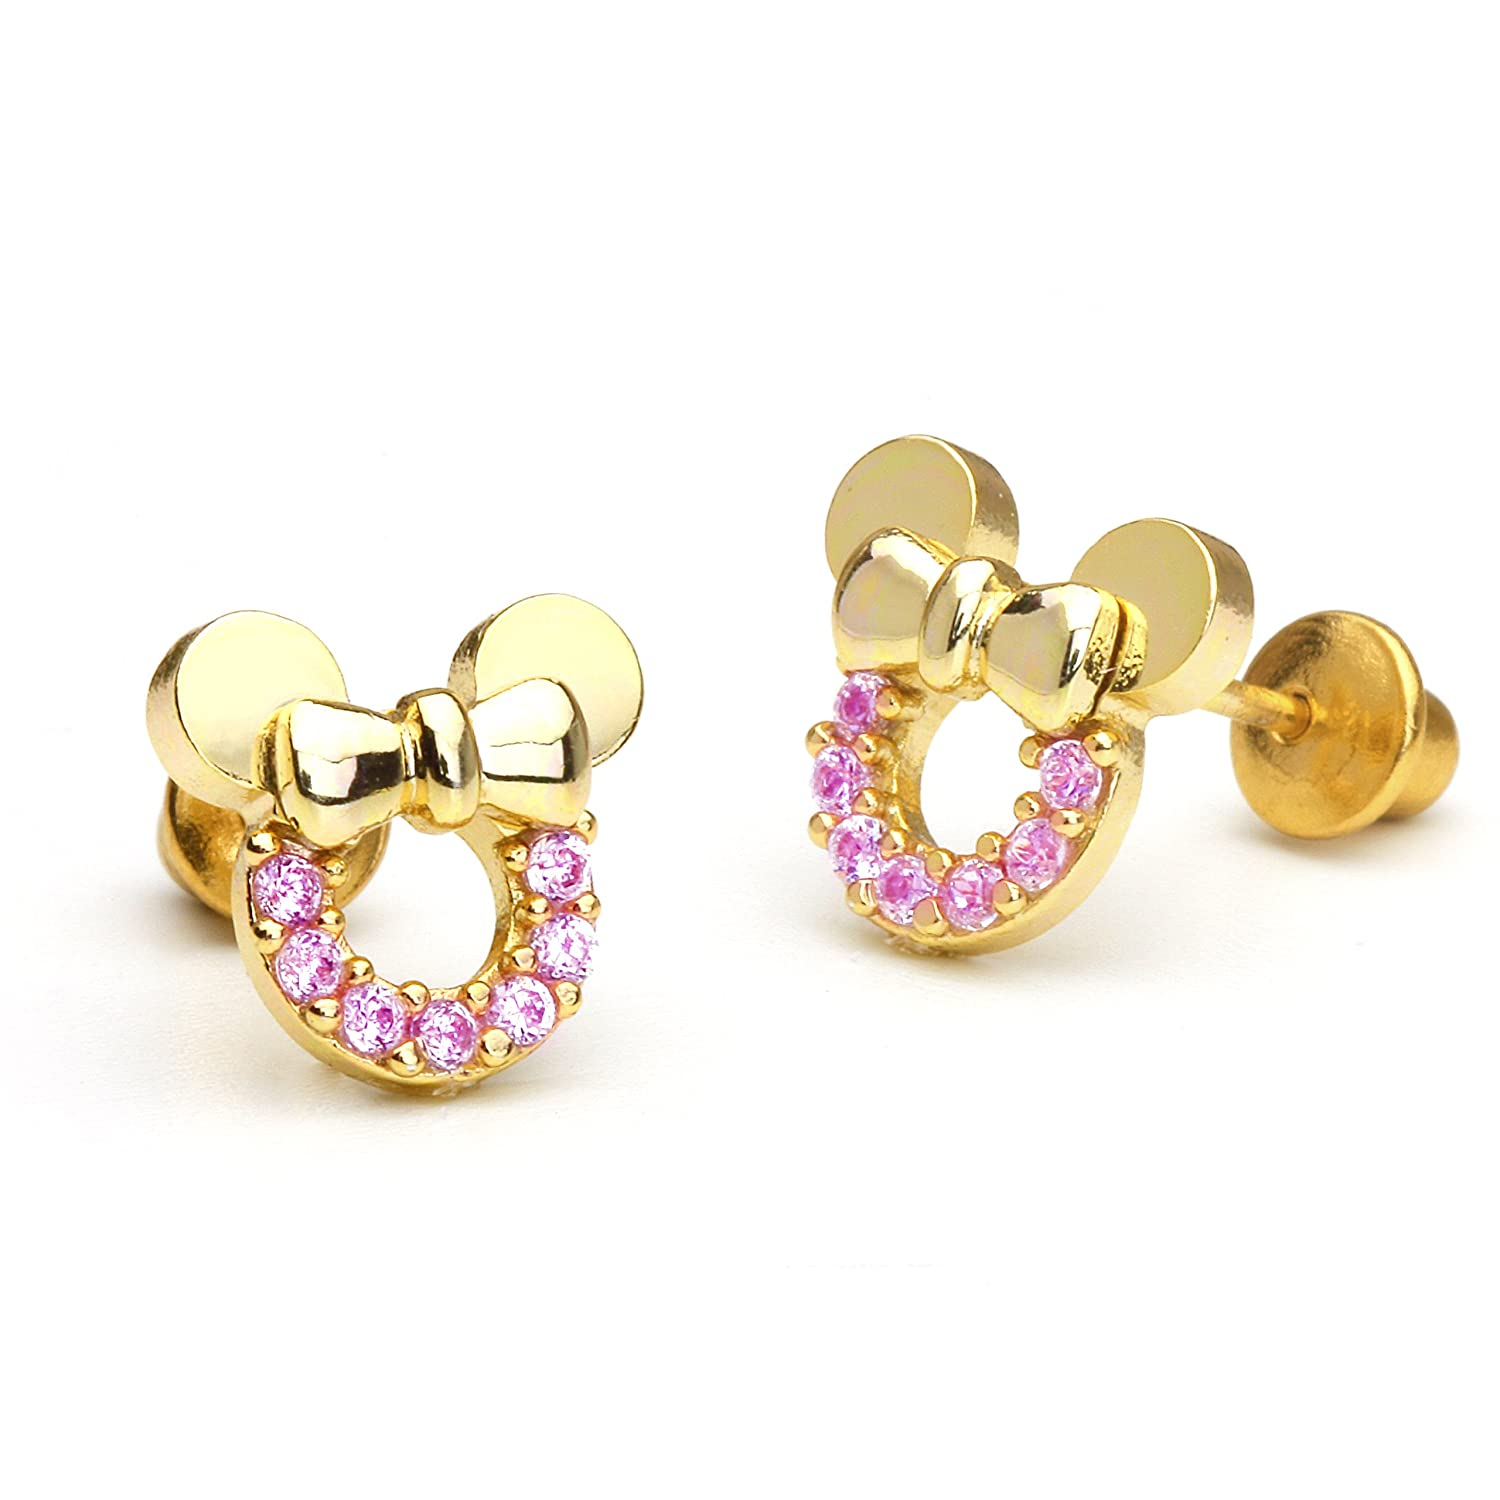 jewellers gold regard grt daily to earrings simple with org sweet wear earring heart and